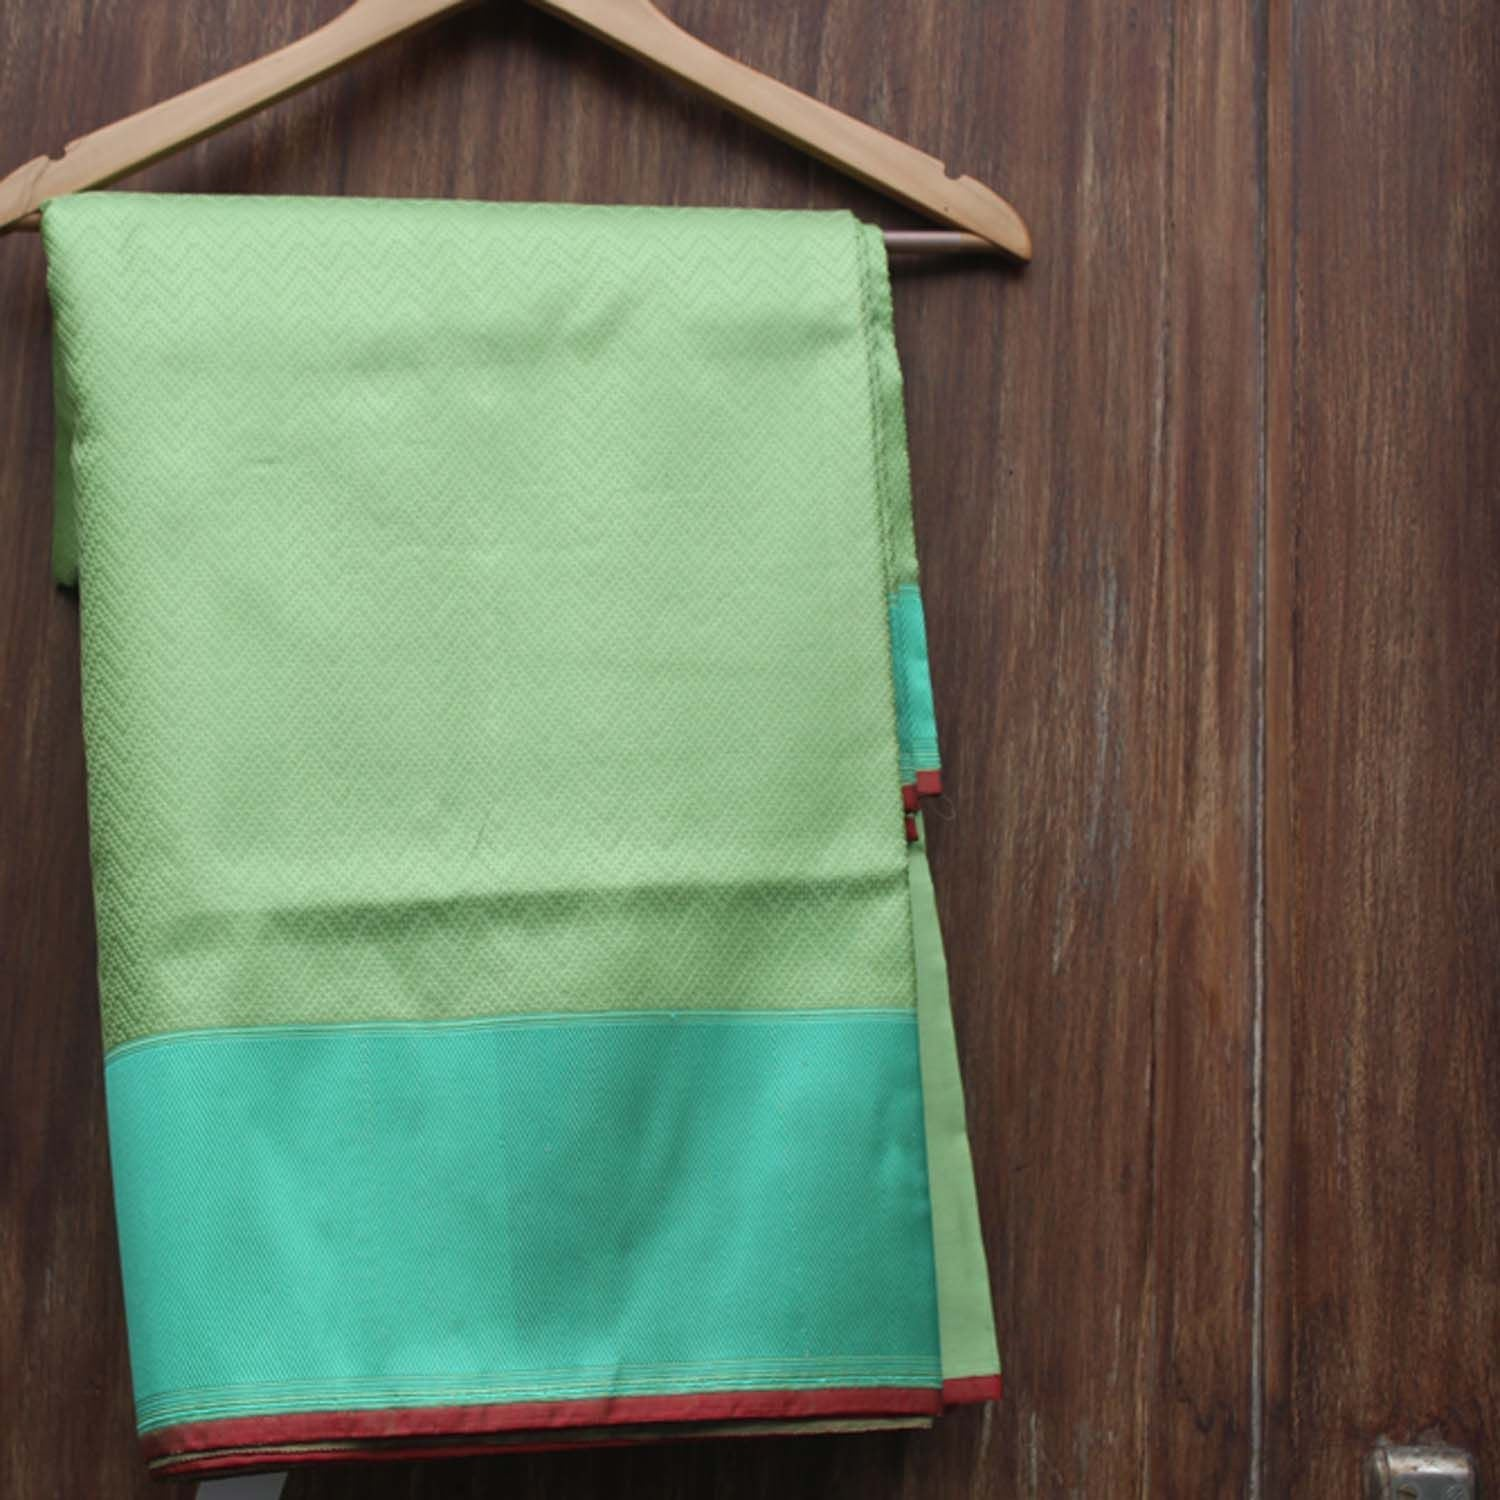 Pista Green Pure Satin Silk Banarasi Handloom Saree - Tilfi - 1